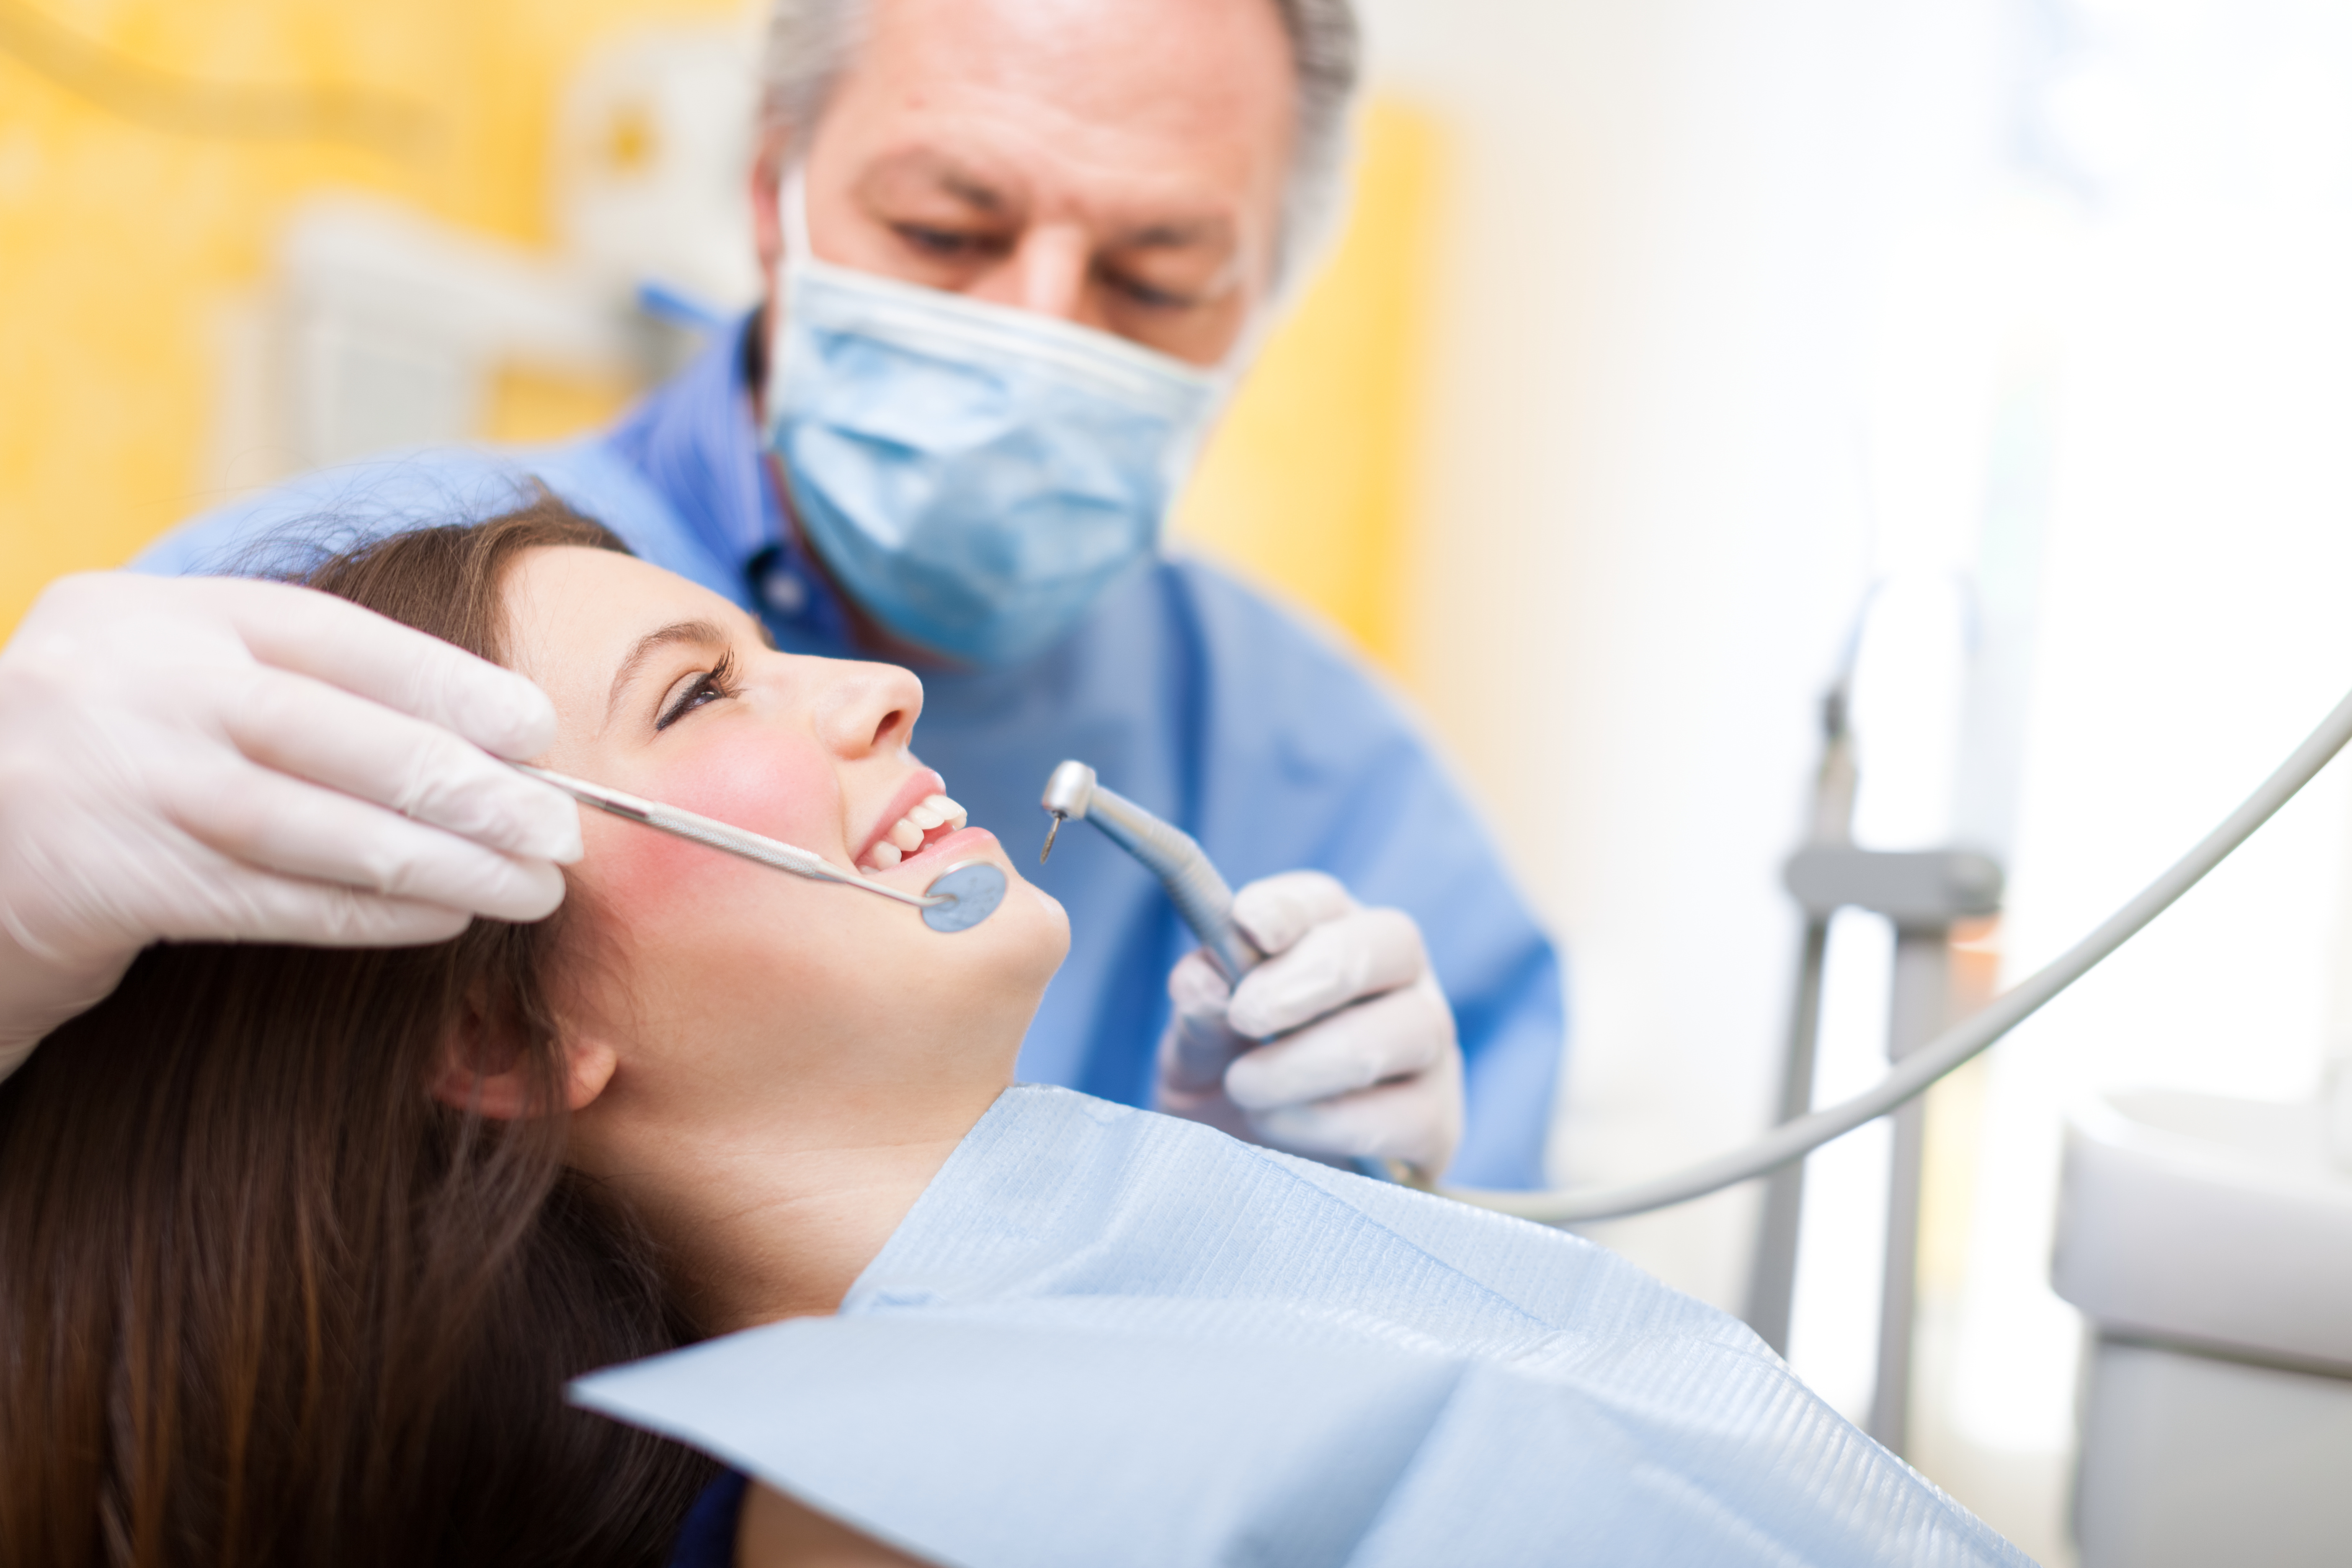 Woman satisfied with dentist services we provide